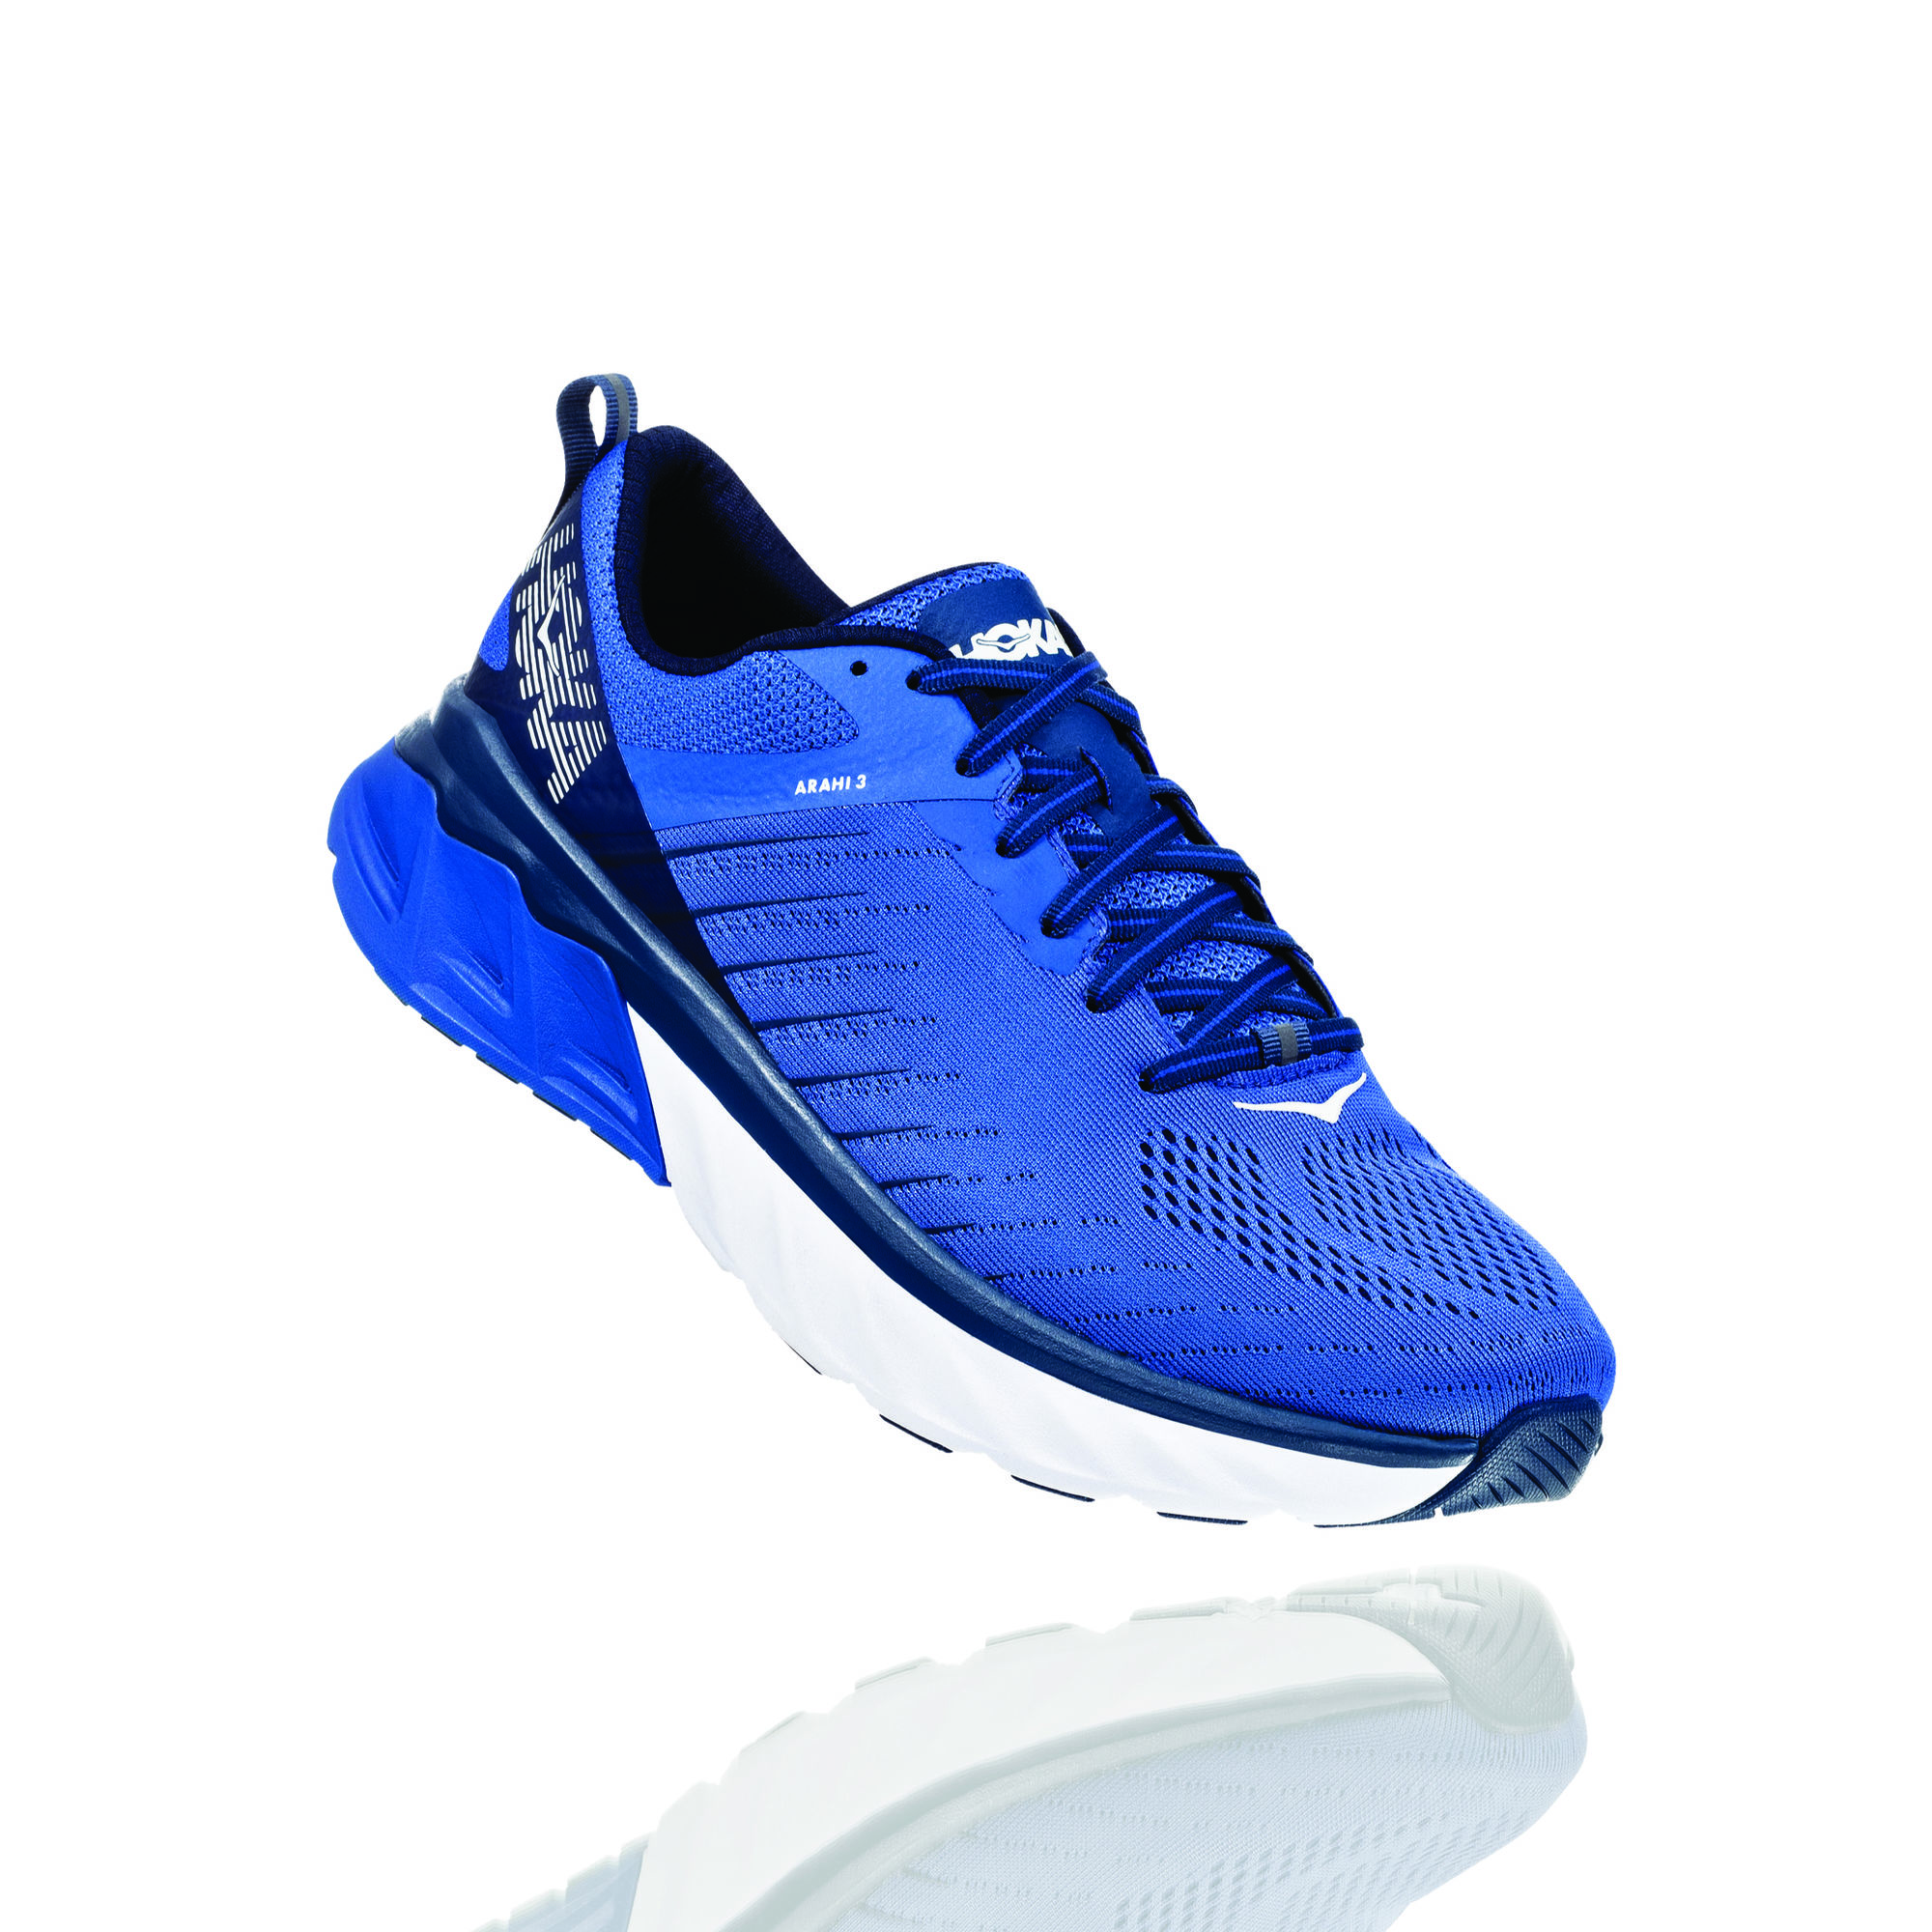 Hoka One One Arahi 3 in Blau